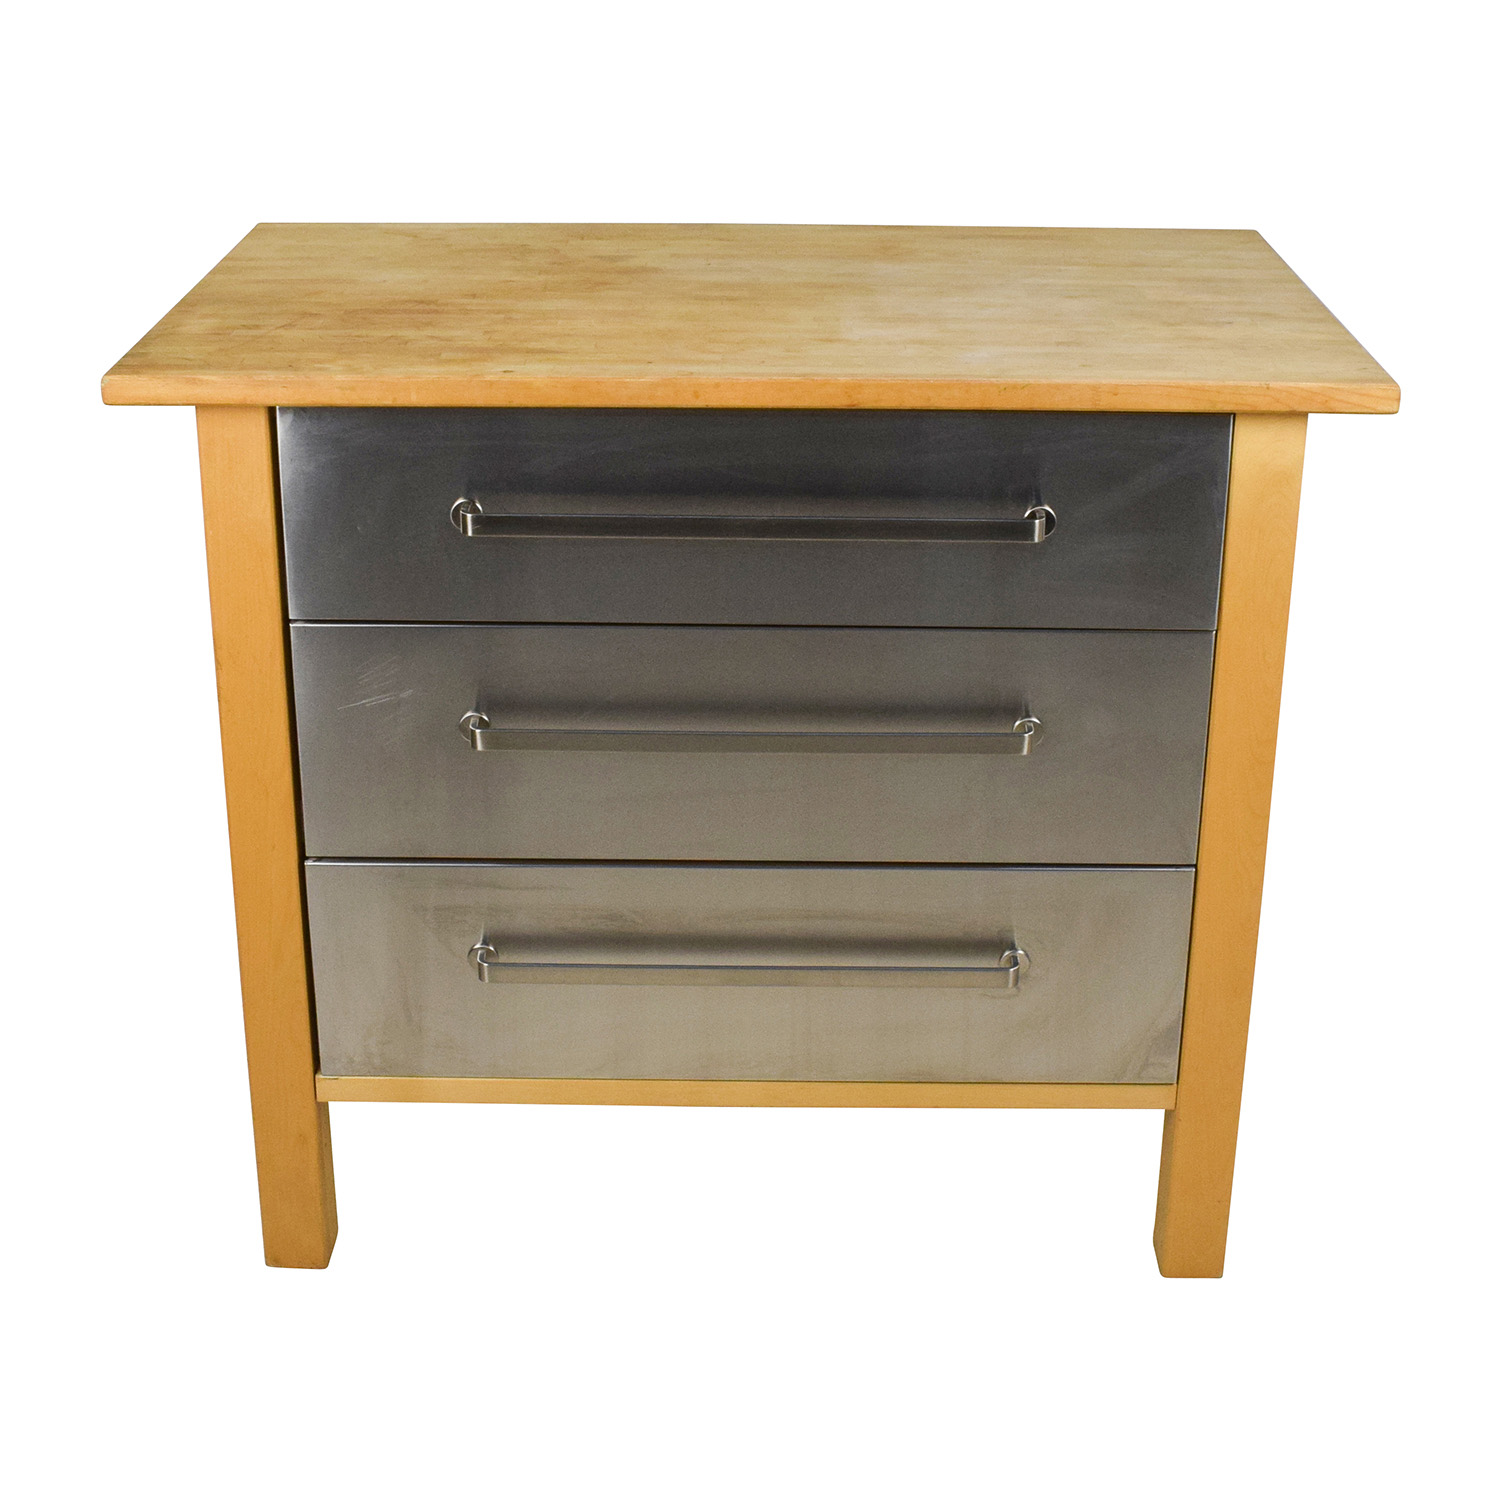 Ikea Kitchen Island Varde 62% off - ikea ikea varde kitchen butcher block island with